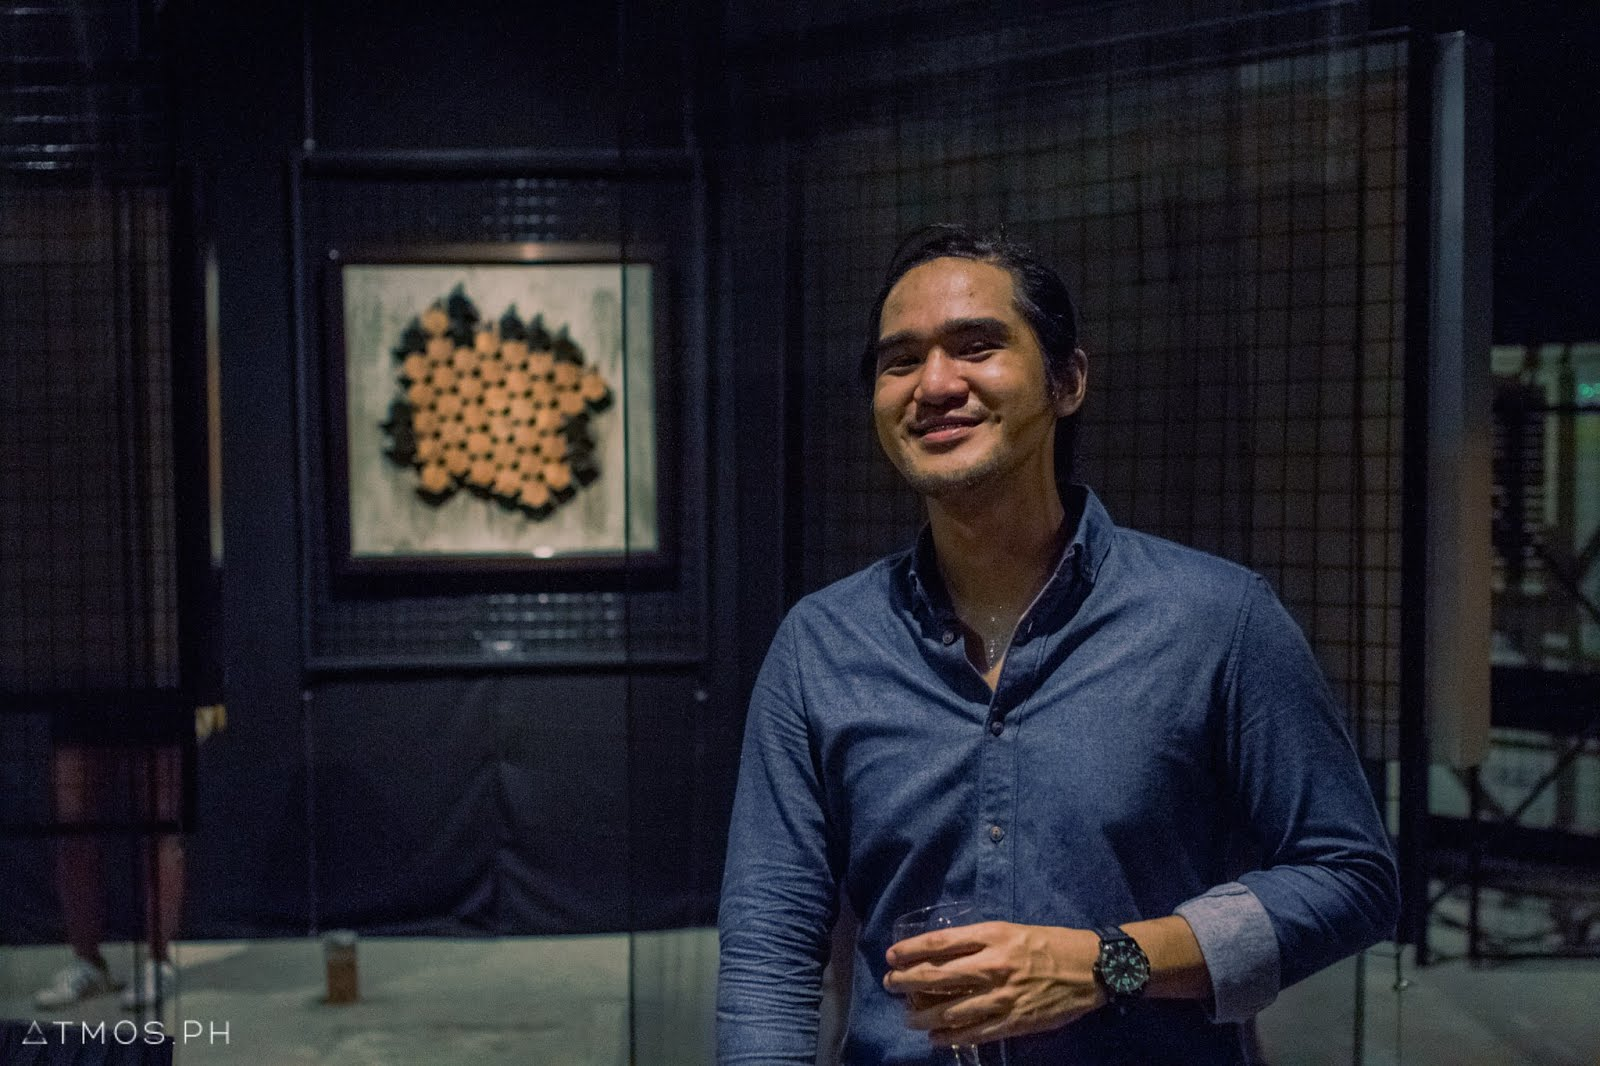 """Coined from """"status quo"""" and """"laboratory"""" – and a double entendre for collaboration, QuoLab Iloilo aims to be a yearly affair in the hopes of inspiring an endless pursuit for design innovation in Iloilo City. QuoLab, QuoLab Iloilo, Iloilo, Art, Design, Furniture, Goldwynn Navarro, LaHuBre Designs, Joan Reyes, Pam Laserna, Stephen Peñaranda, Youth, Bryan Liao, Ron Miranda Baba, Shiela Molato, Ron Matthews Espinosa, Daryl Refuerzo"""